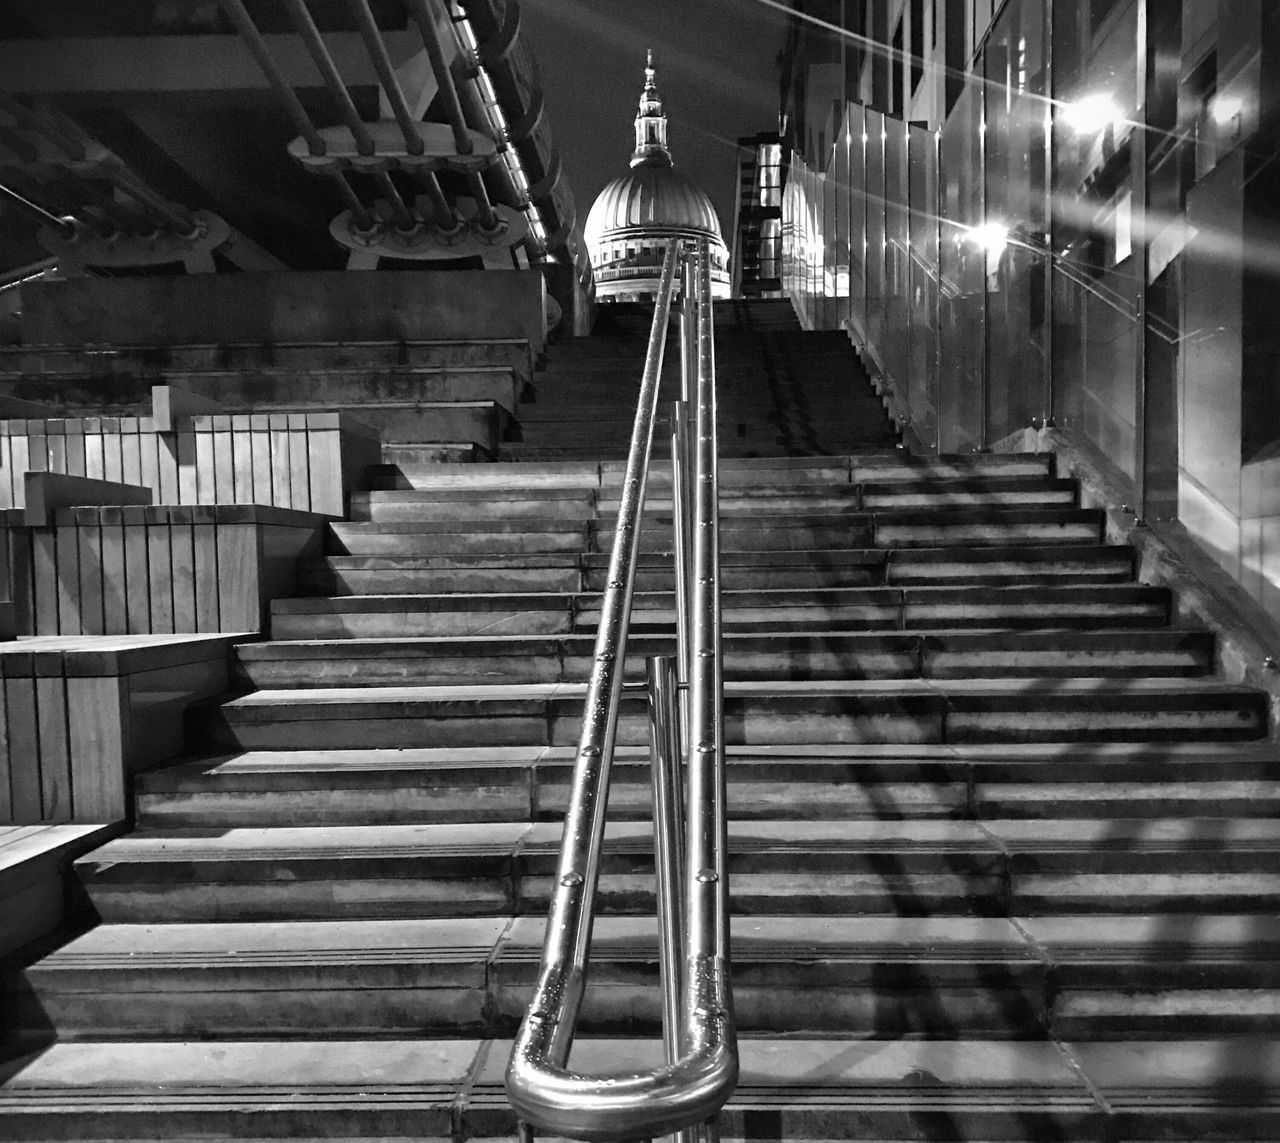 Steps Steps And Staircases Staircase Railing The Way Forward Architecture Built Structure Indoors  Stairs No People Hand Rail Illuminated Day EyeEm Best Edits EyeEm Best Shots Blackandwhite Blackandwhite Photography Black And White Architecture The Architect - 2017 EyeEm Awards EyeEm LOST IN London